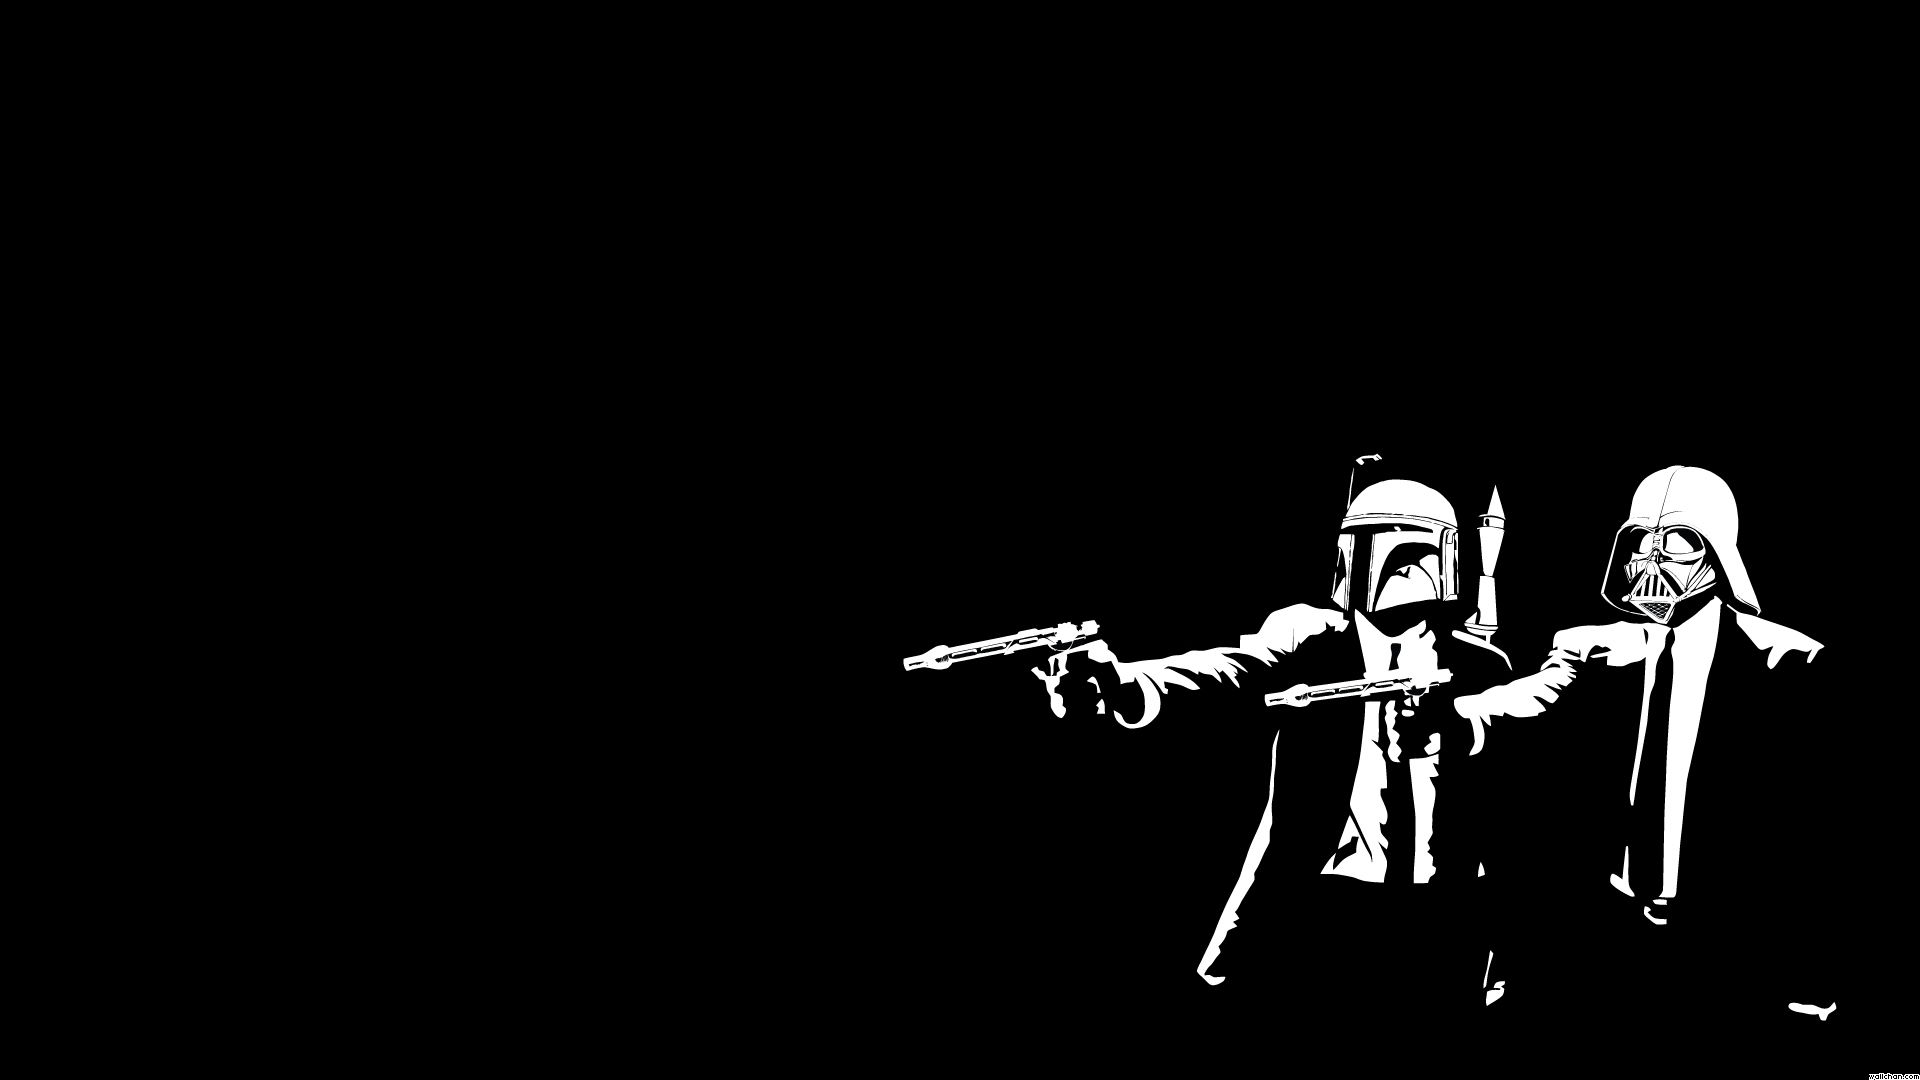 cool star wars wallpaper | 1920x1080 | #8167